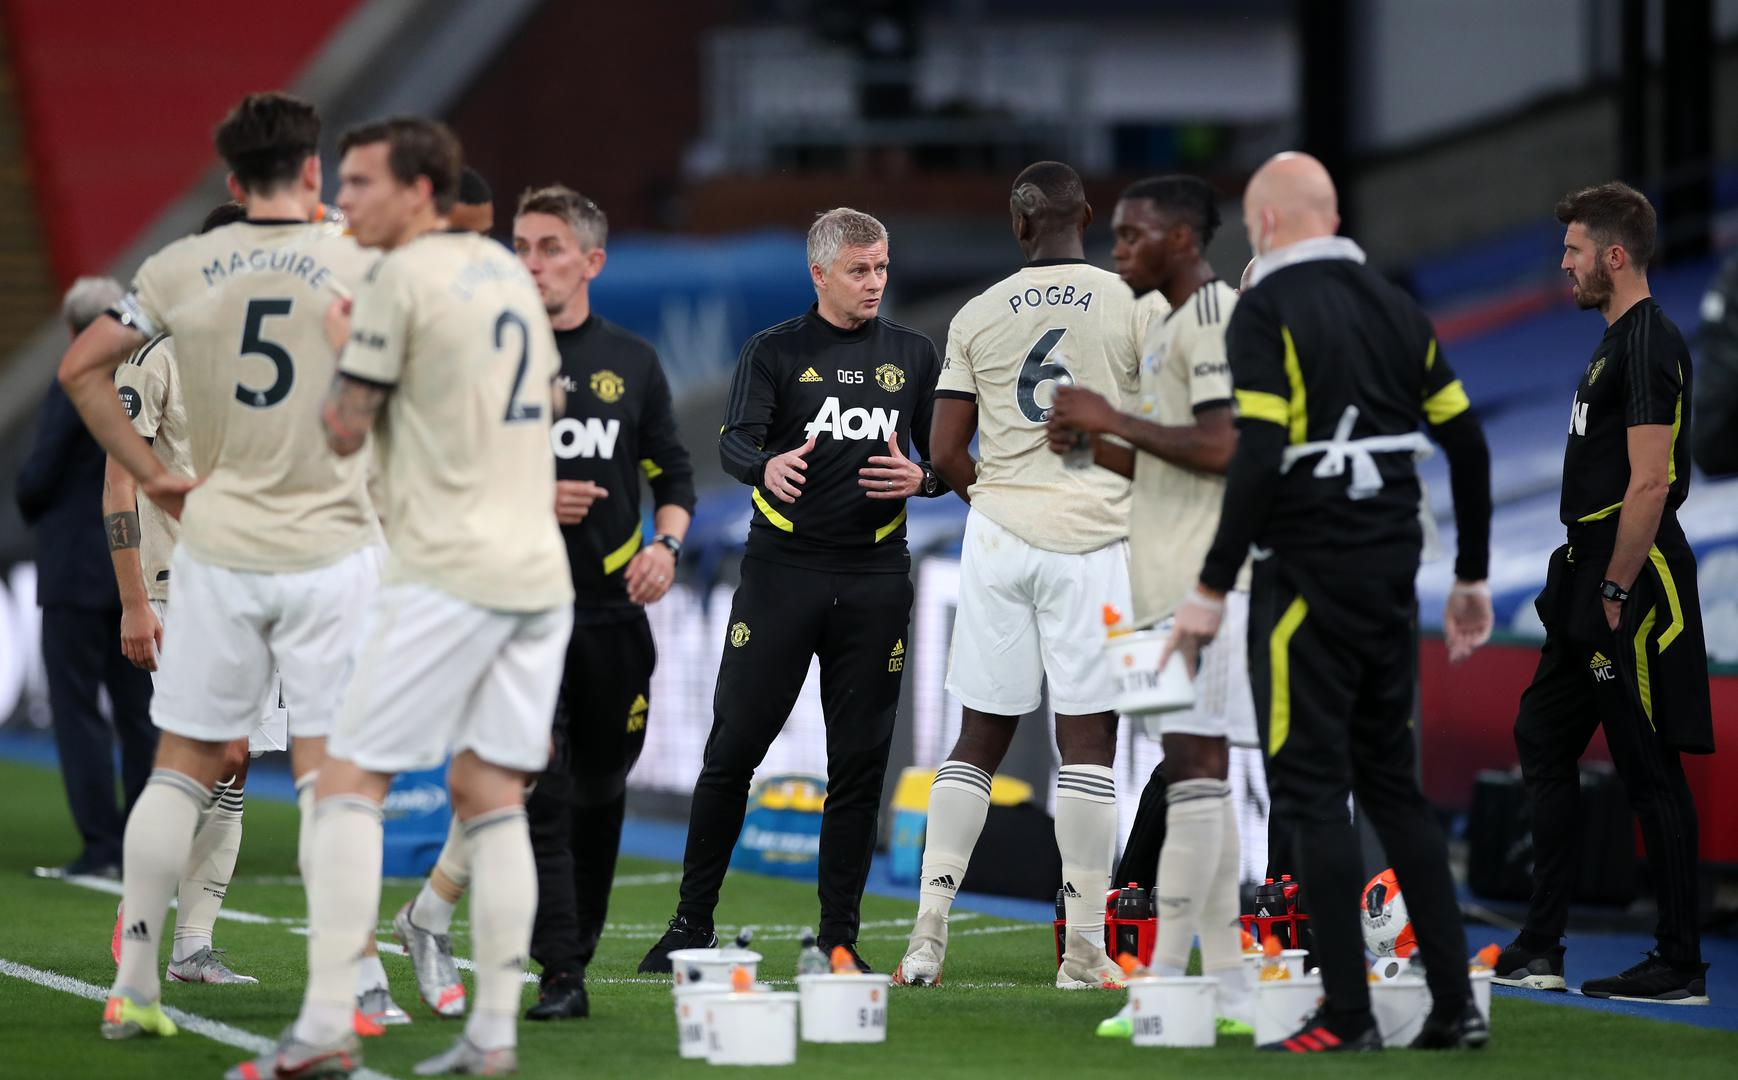 Ole Gunnar Solskjaer talks to his Manchester United players during a drinks break.